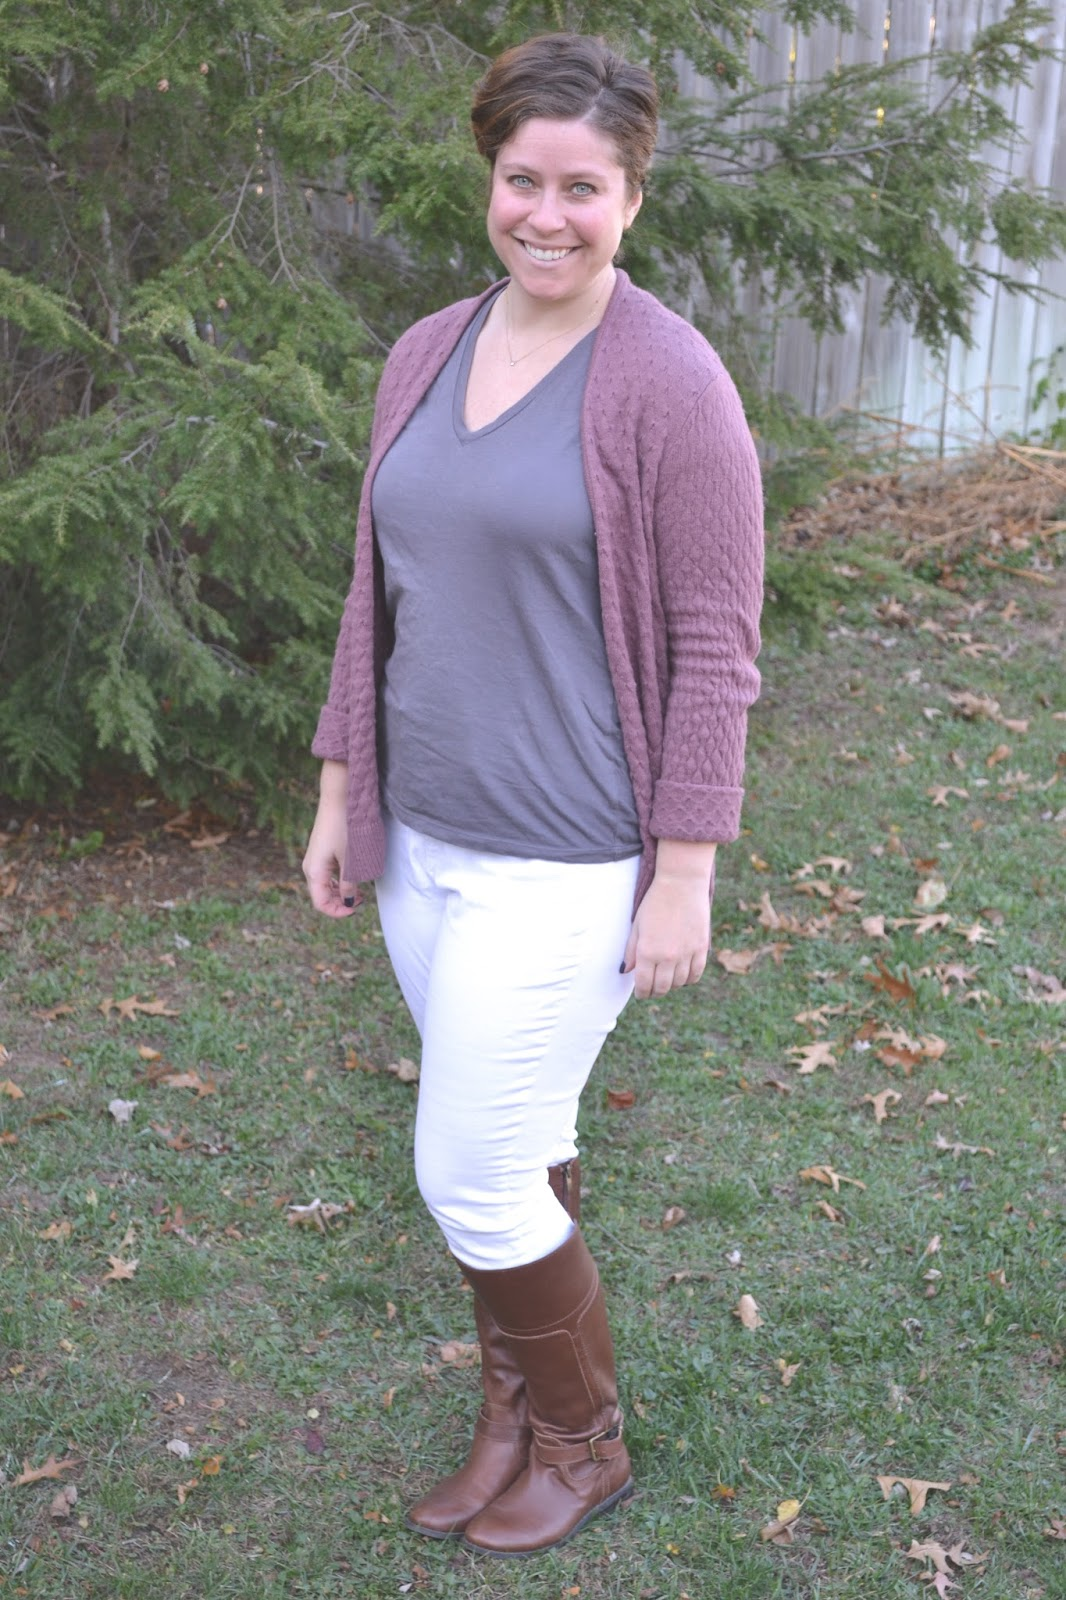 d3c8b5e836b I knew that my textured mauve sweater would be a good stand-in for the chunky  blush cardigan in the photo!